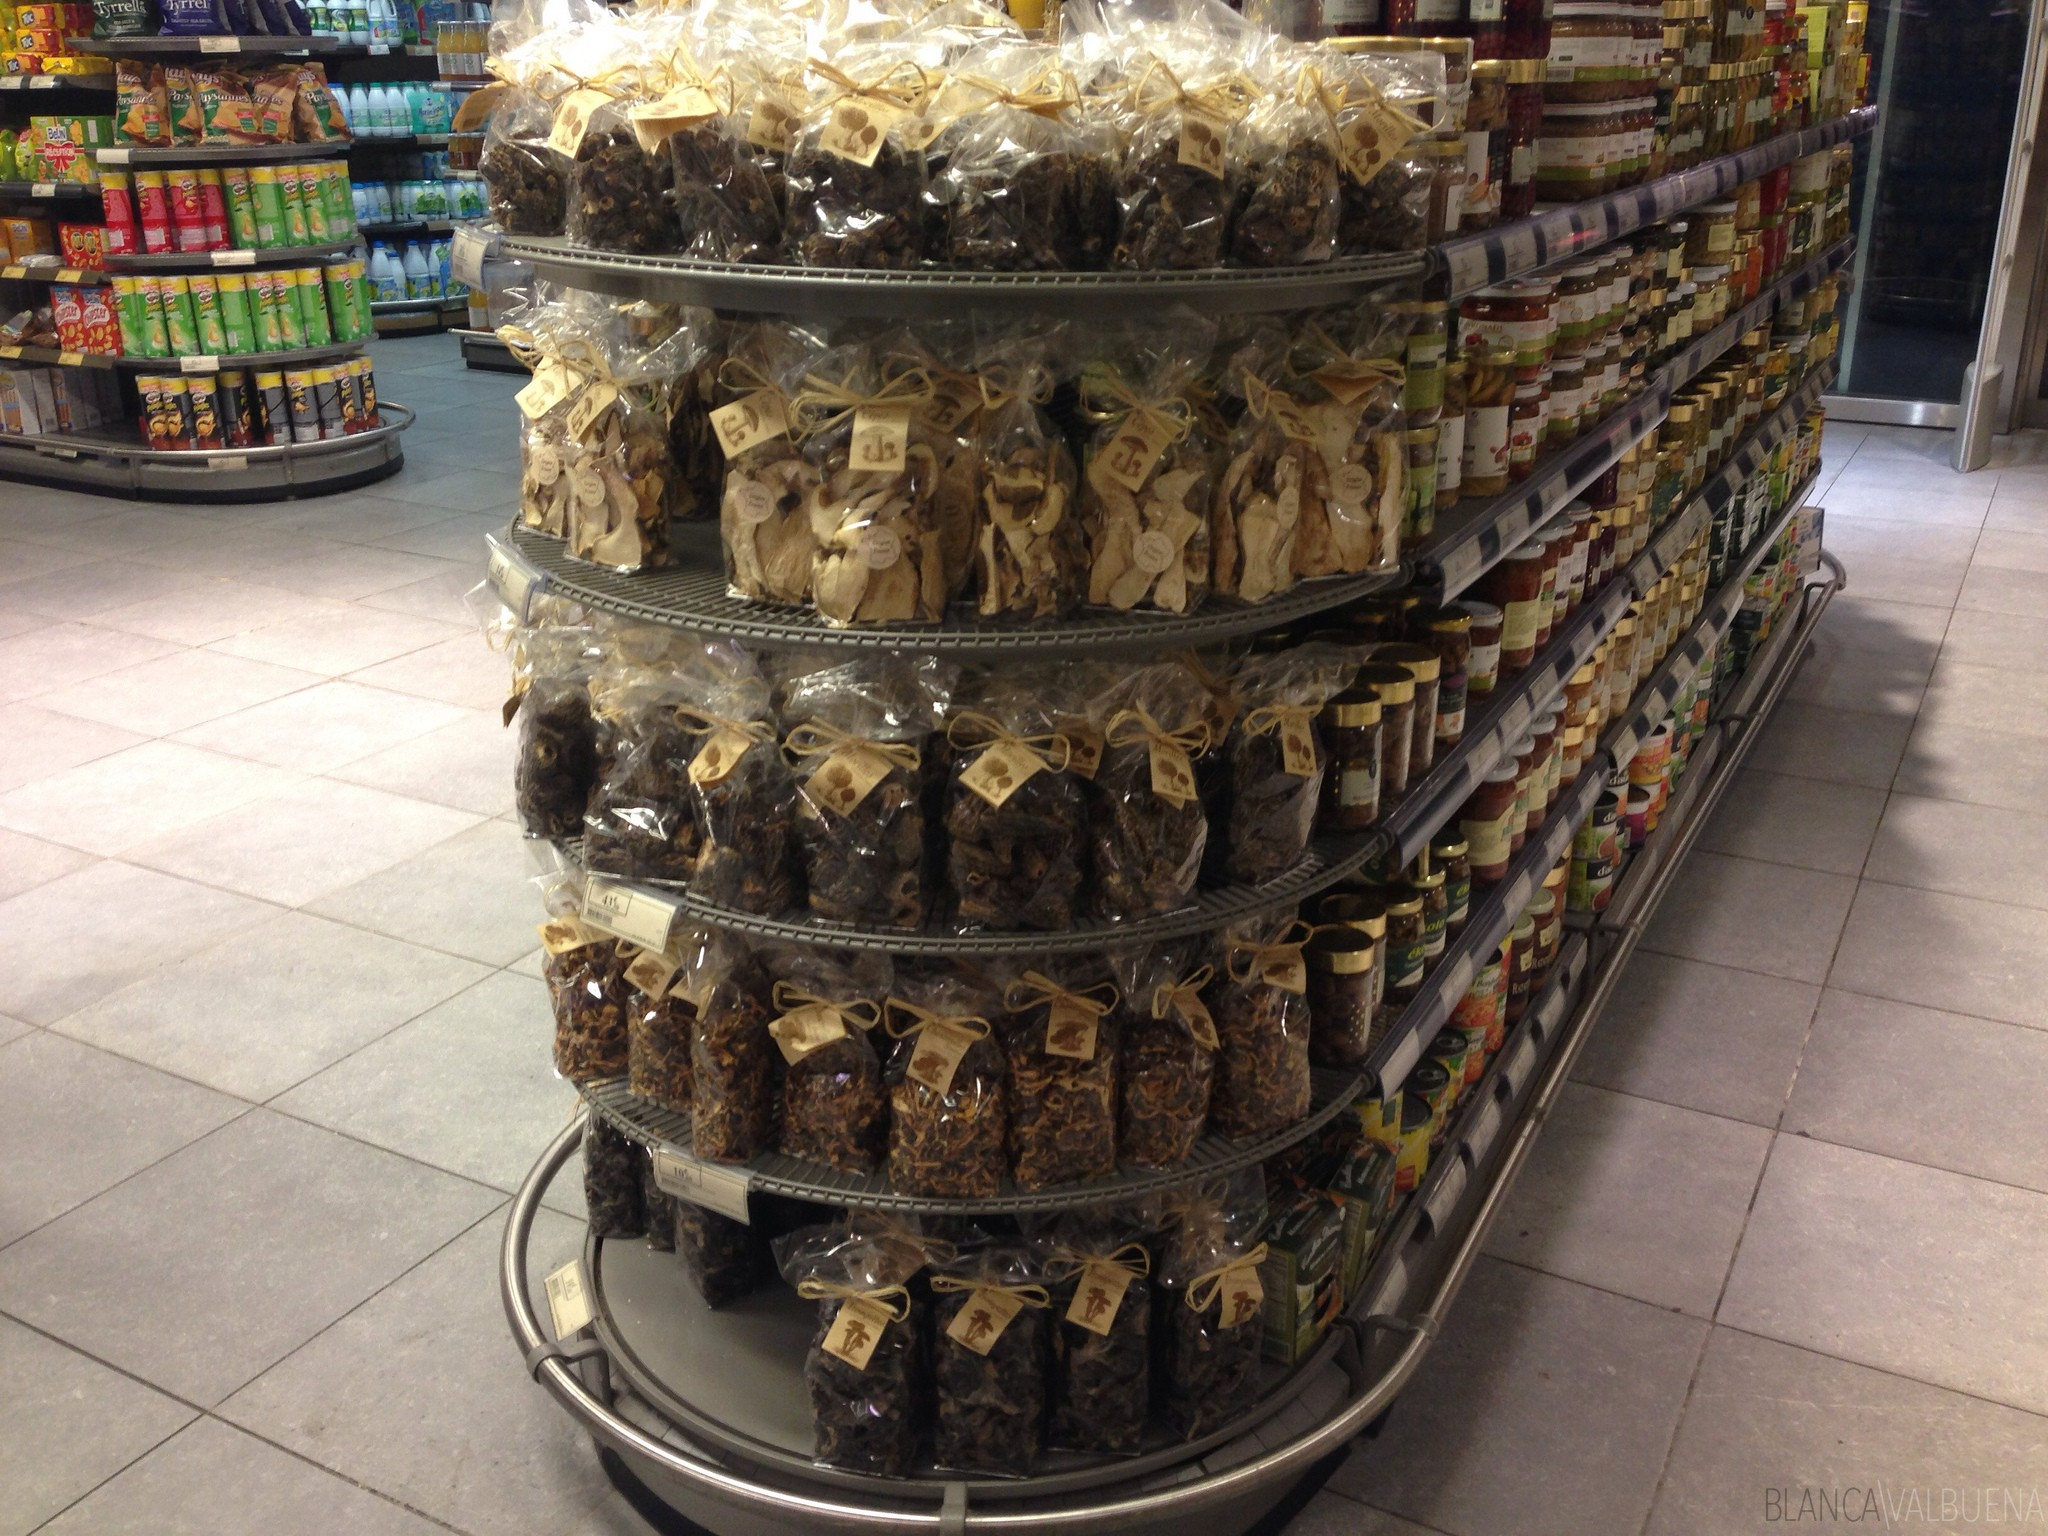 There are all types of dried mushrooms at this store in Paris